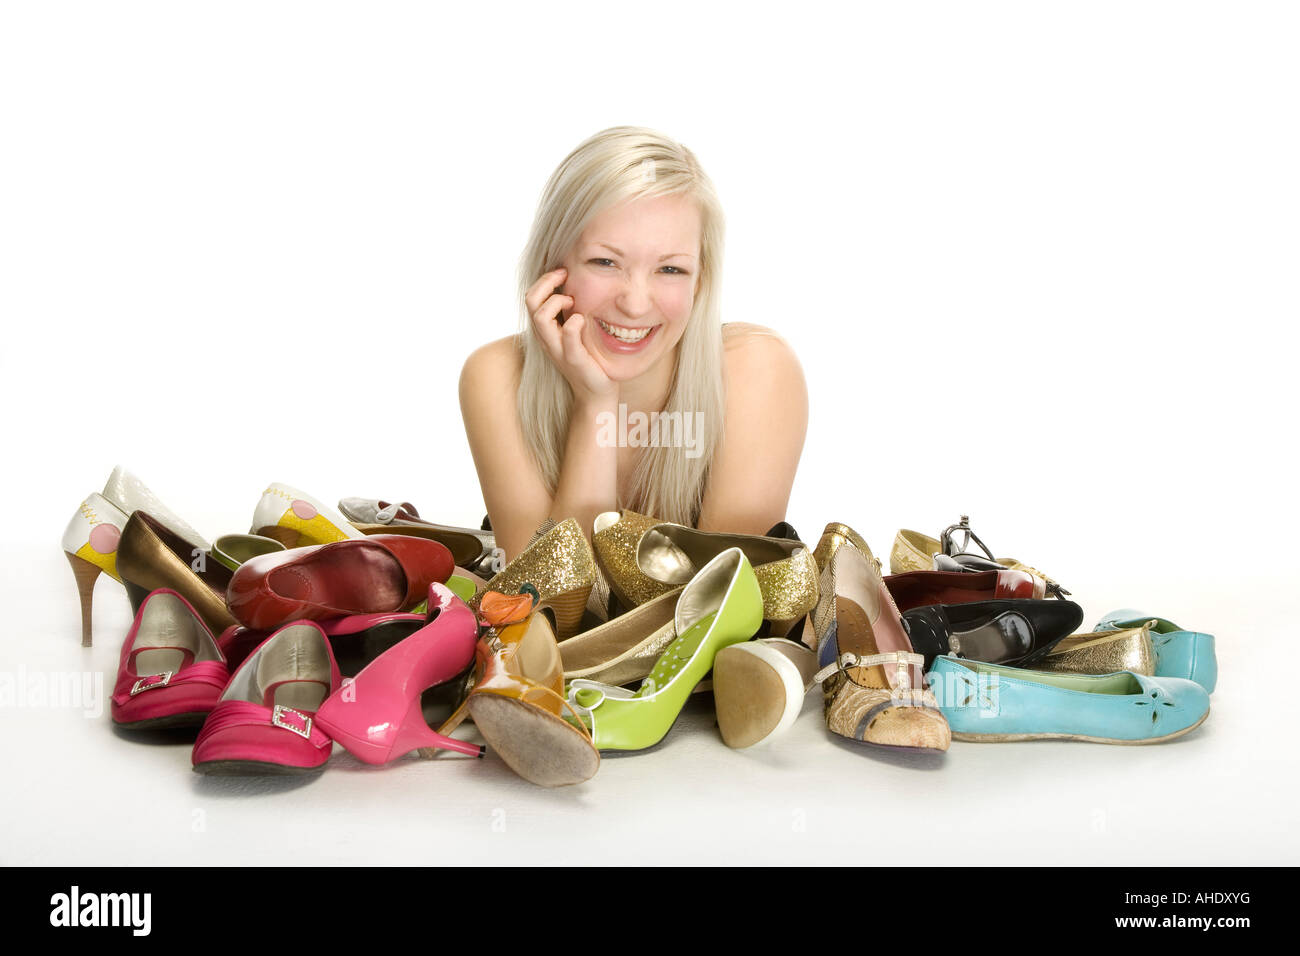 Woman smiling with pile of shoes in front of her - Stock Image